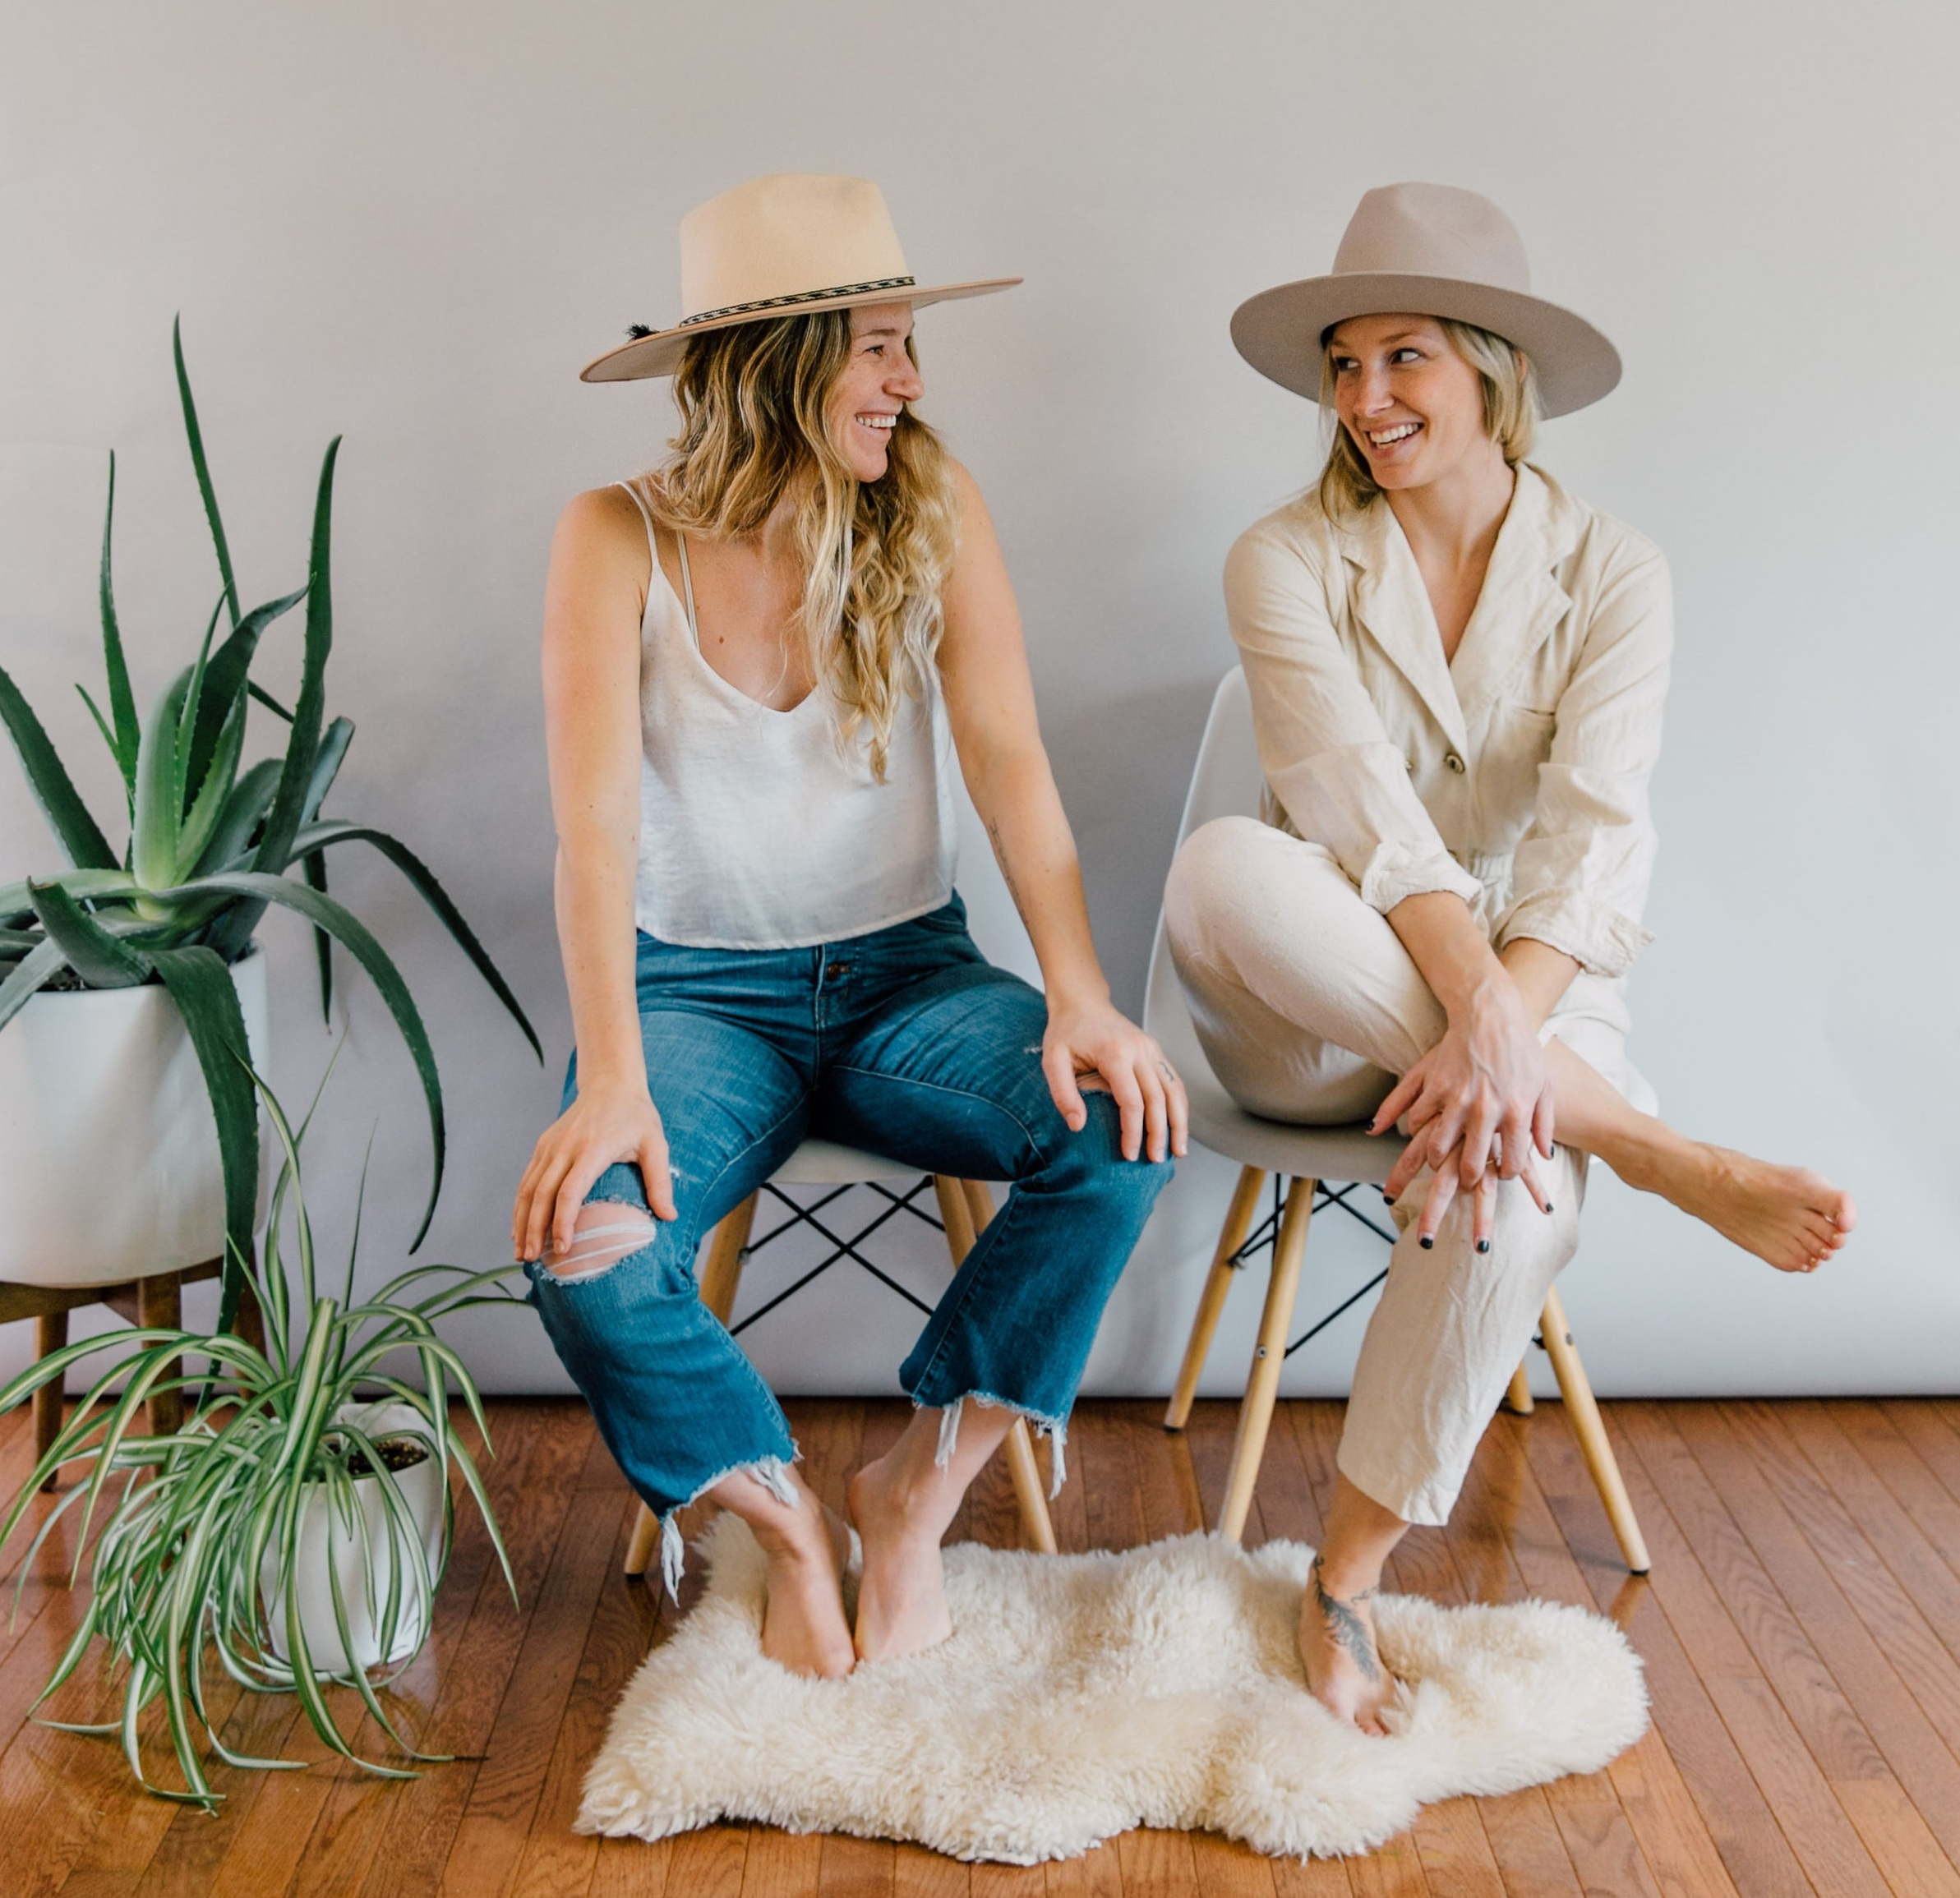 friends + small business owners Laura Burkhart + Tawni Eakman